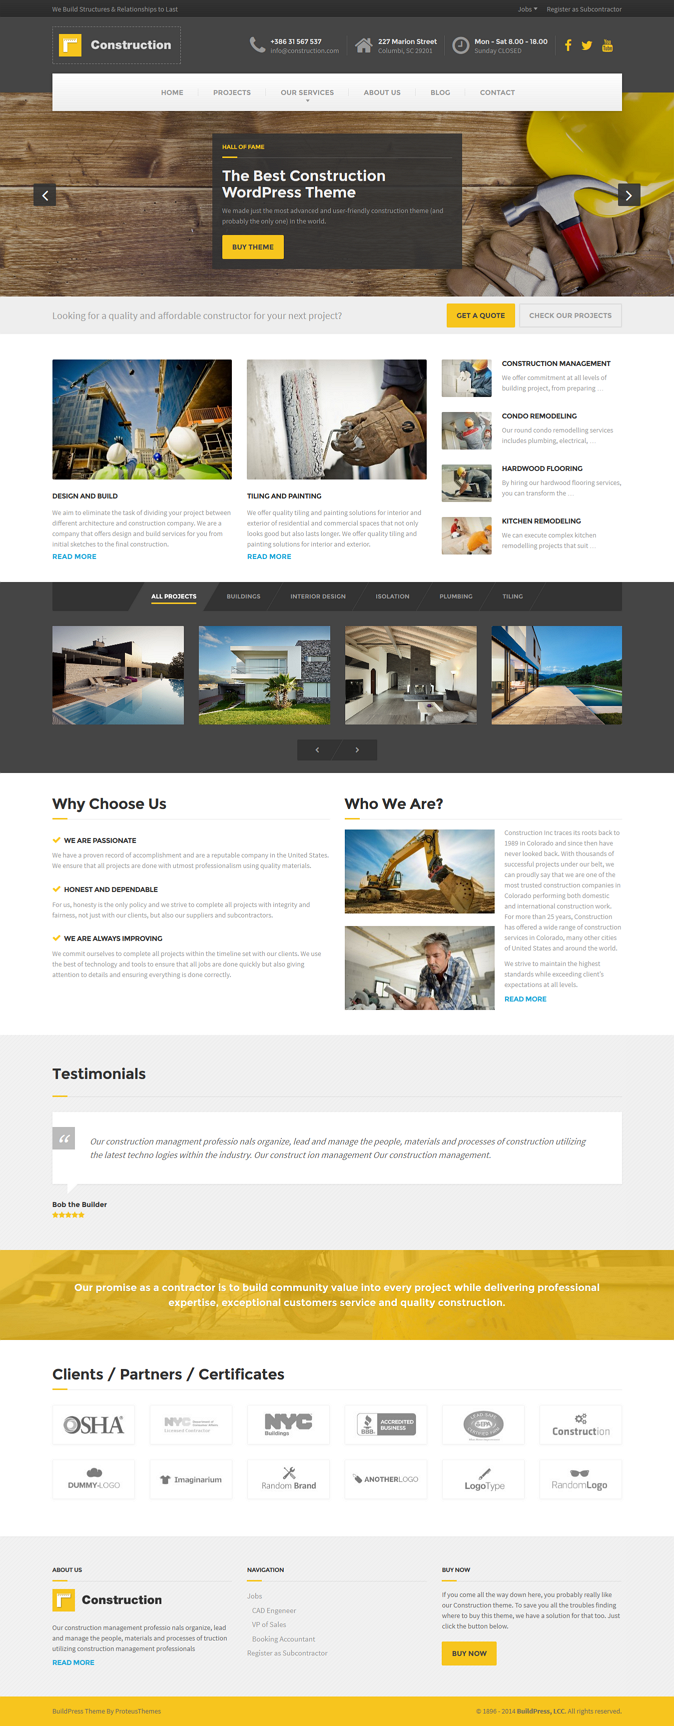 Construction is a premium WordPress Theme for any kind of construction businesses and companies. ...